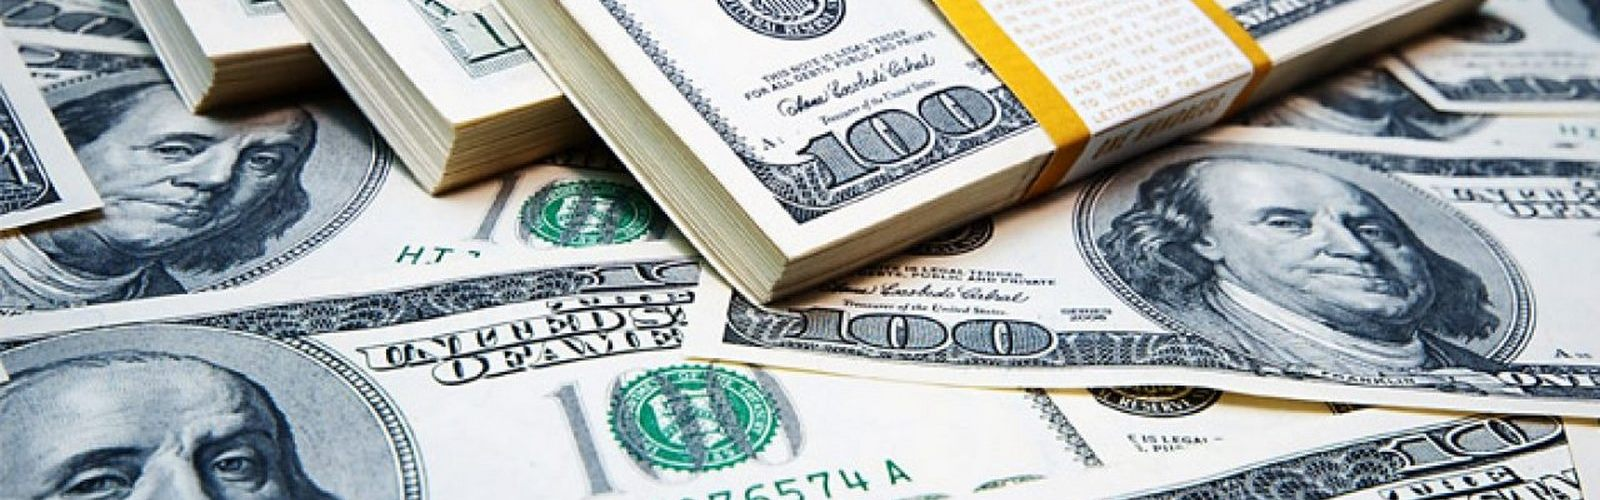 Buy Counterfeit US Dollars Online